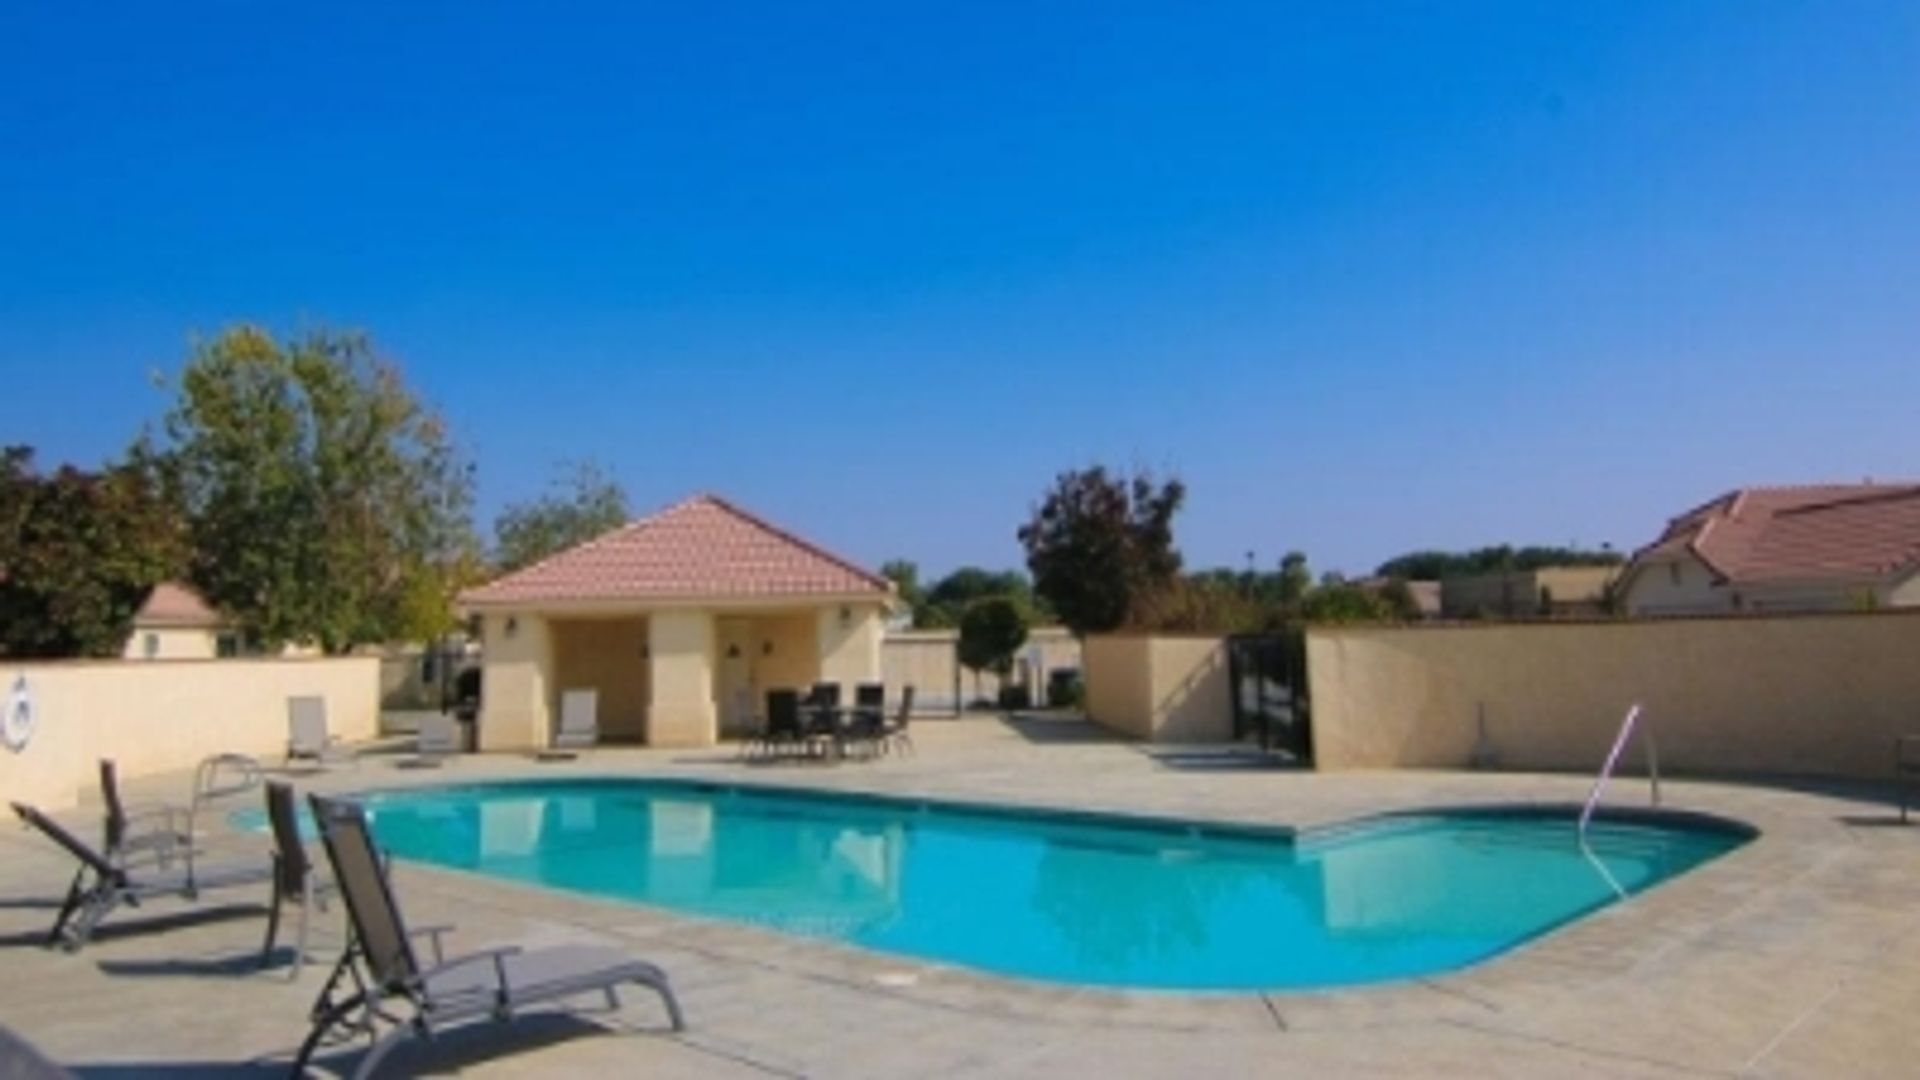 2 bed apartment at Brimhall Road, Bakersfield, CA 93312 ...